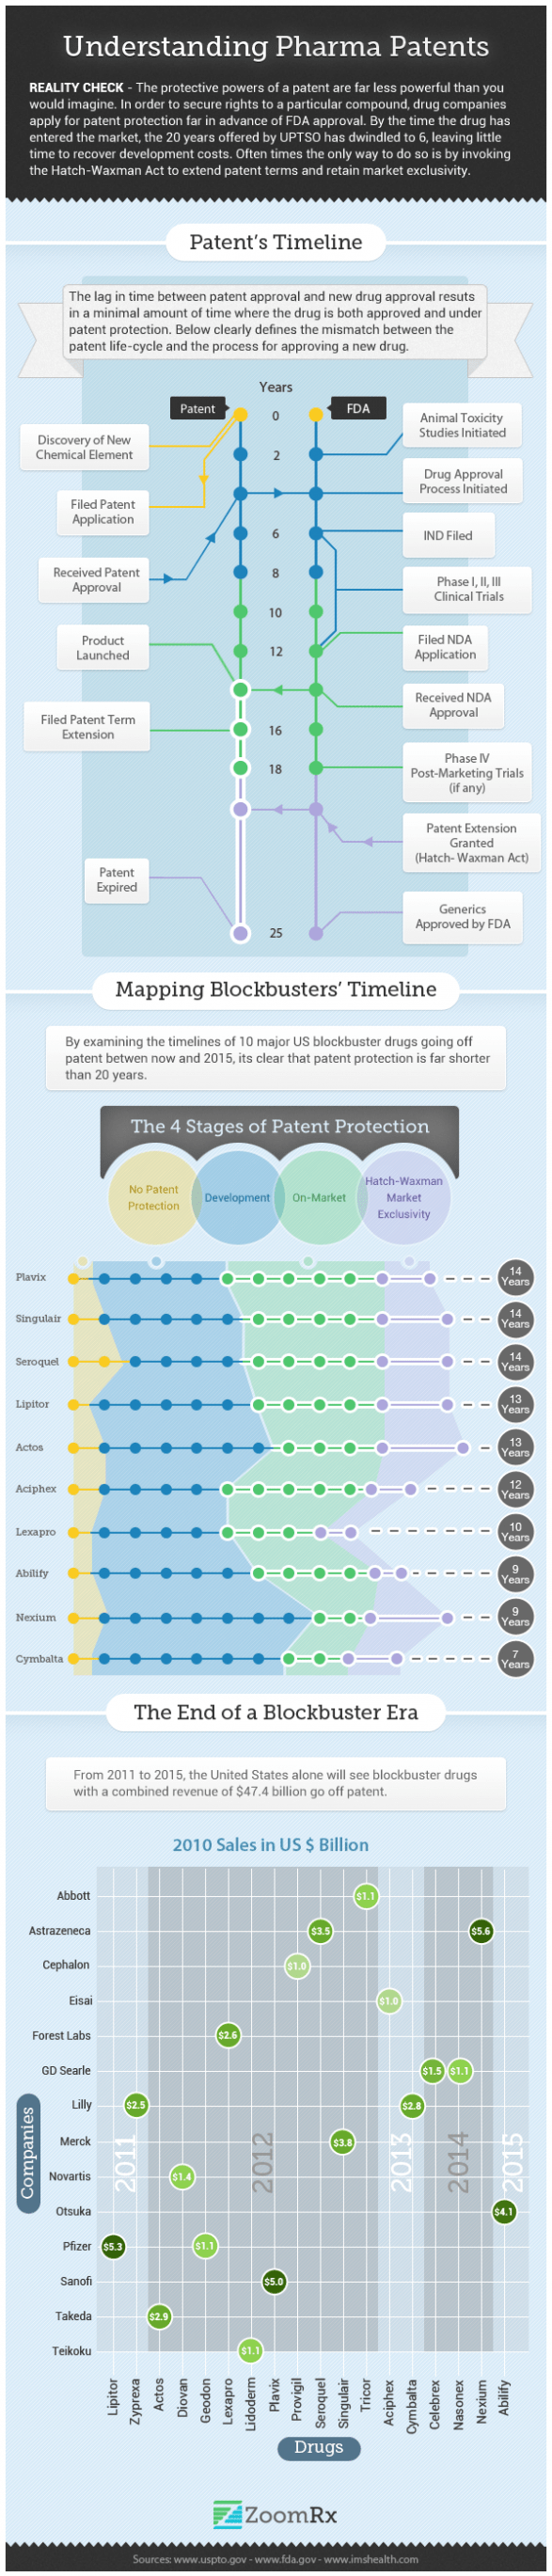 Understanding Pharma Patents